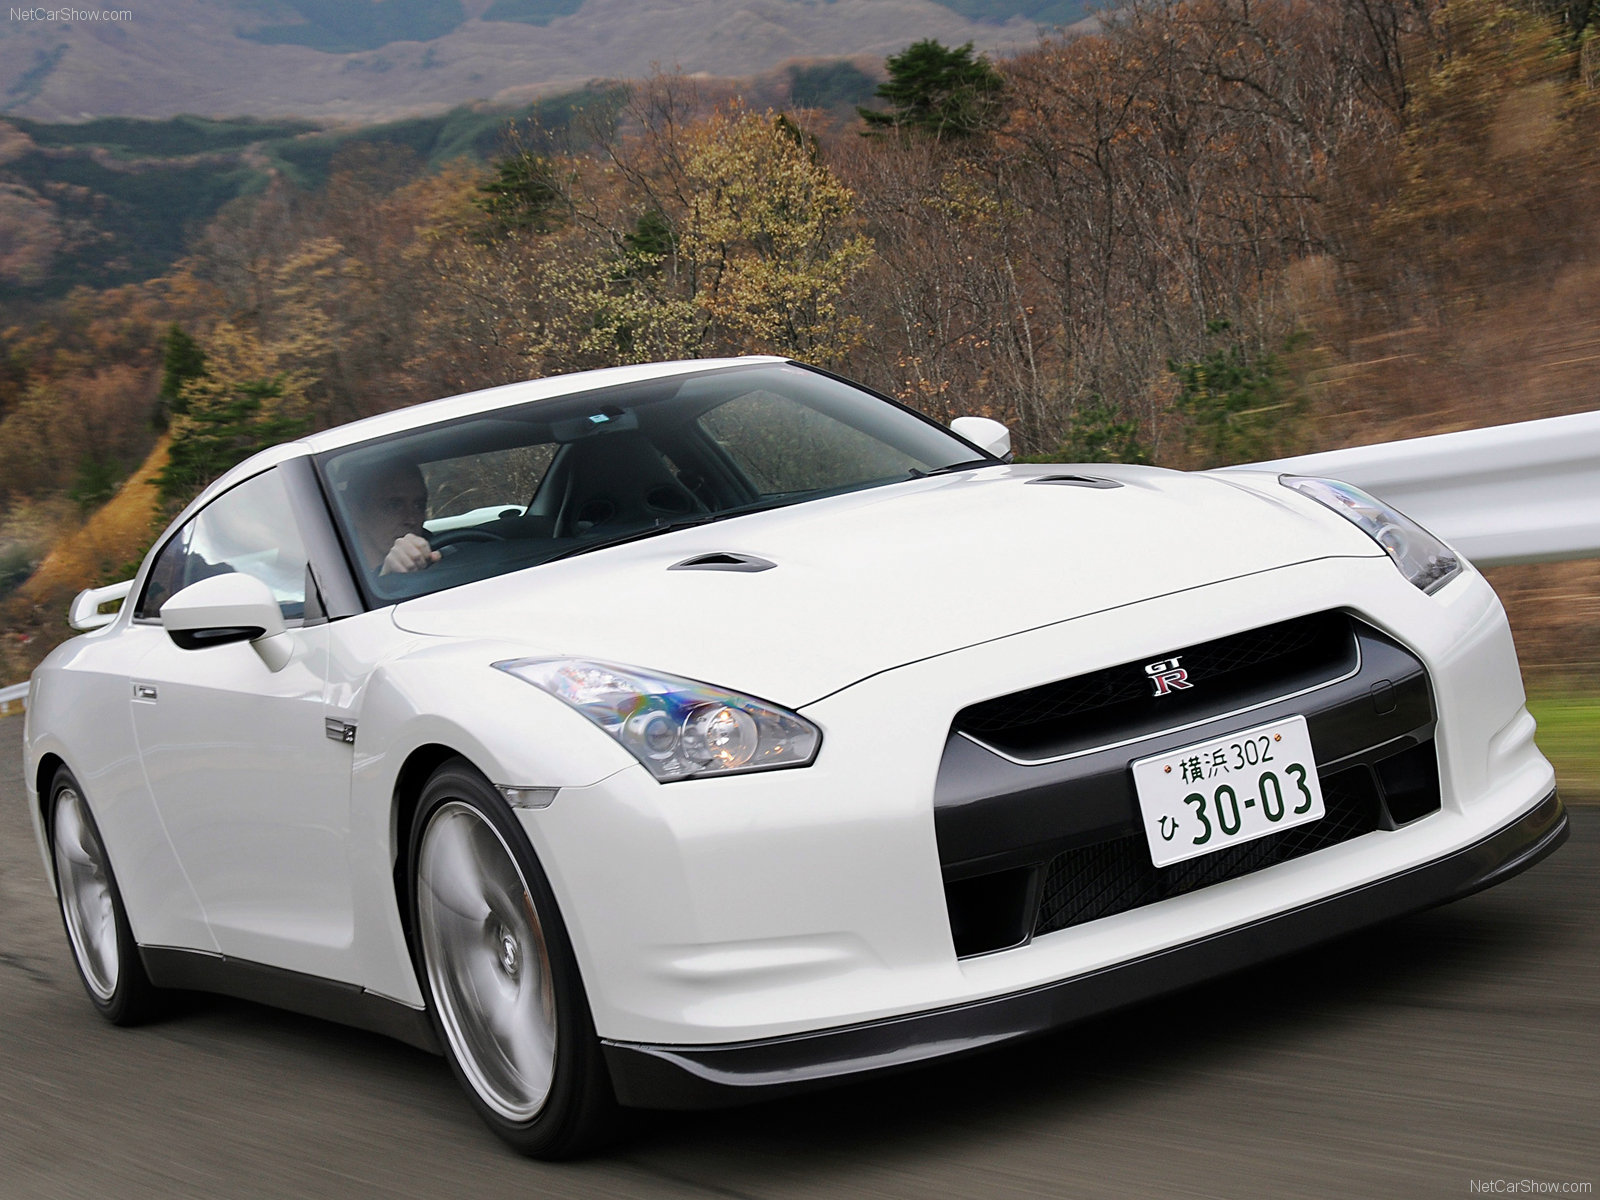 Cool Backgrounds Car Wallpapers Nissan Gt R